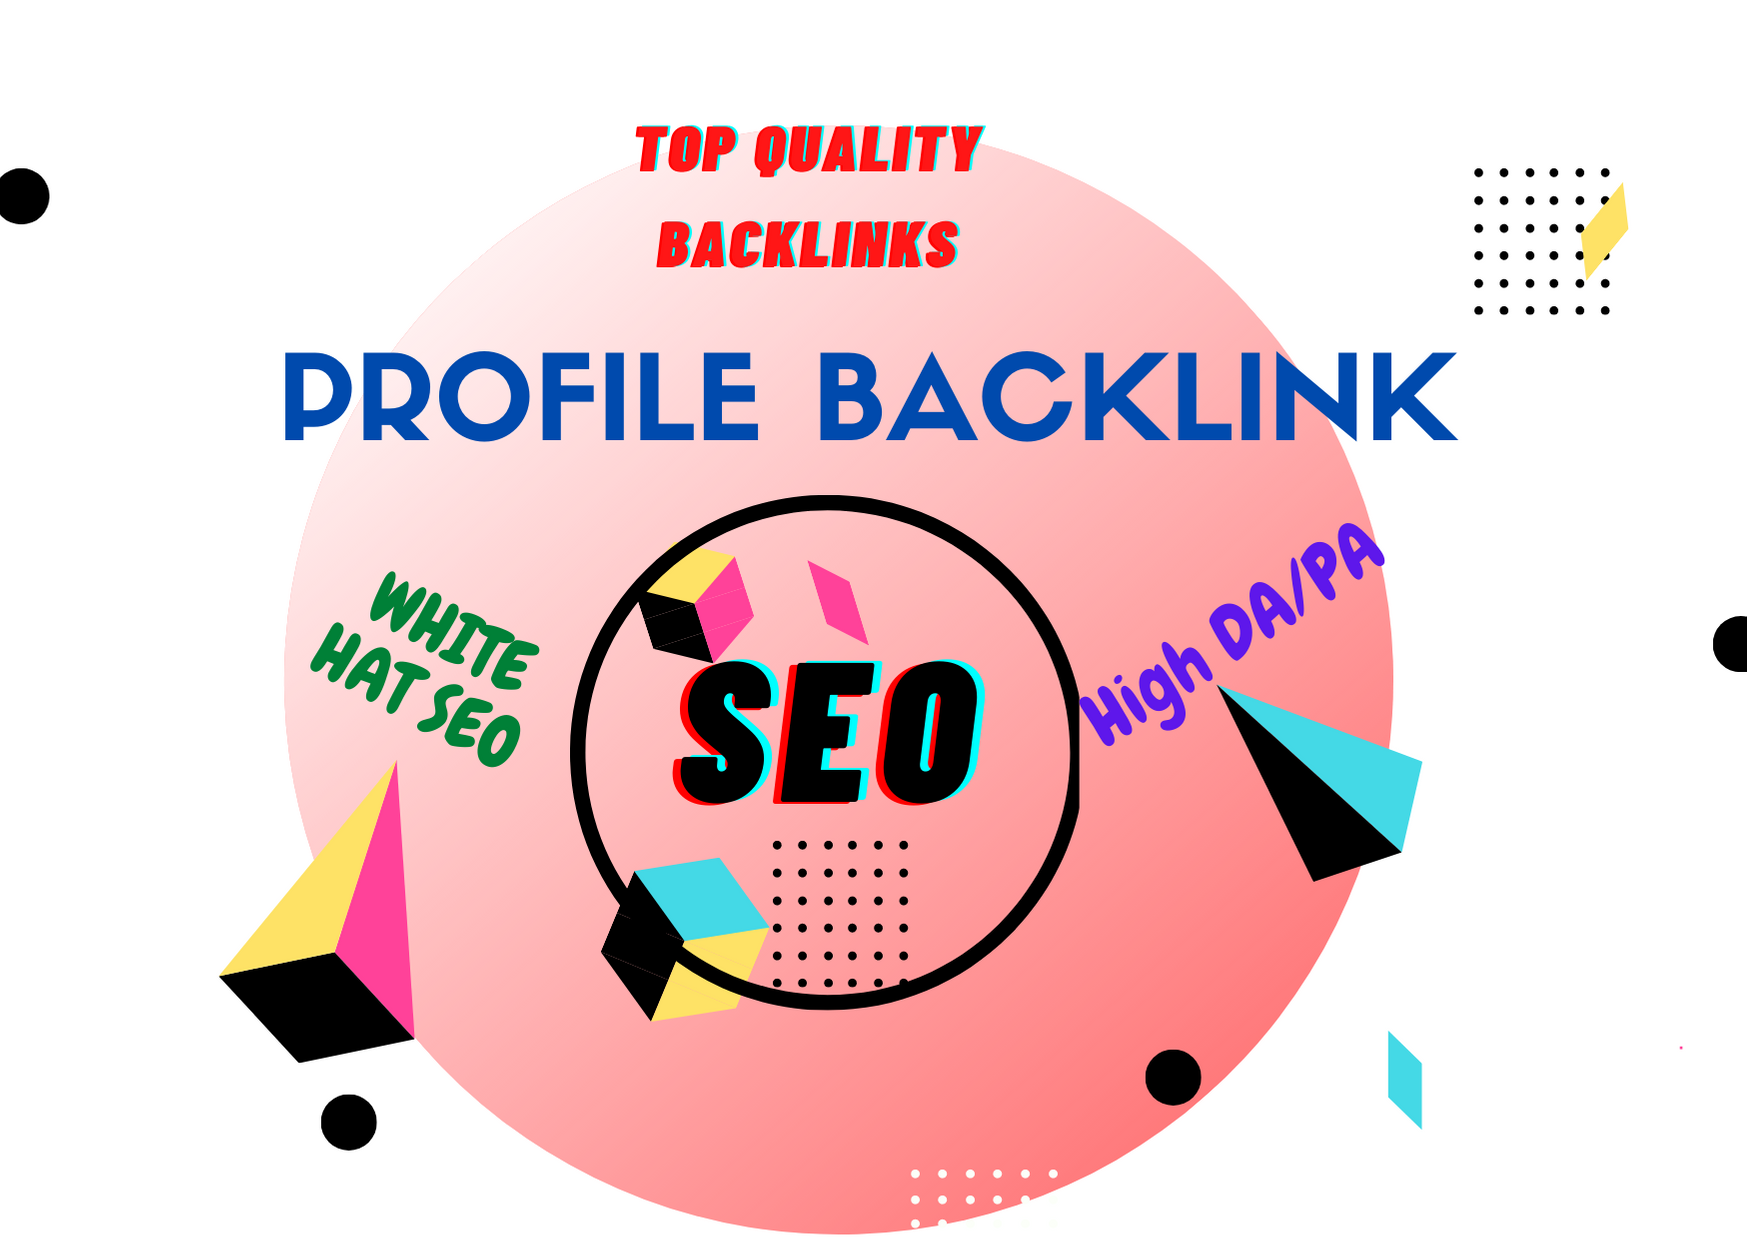 I will do create 200 high quality profile backlinks for SEO